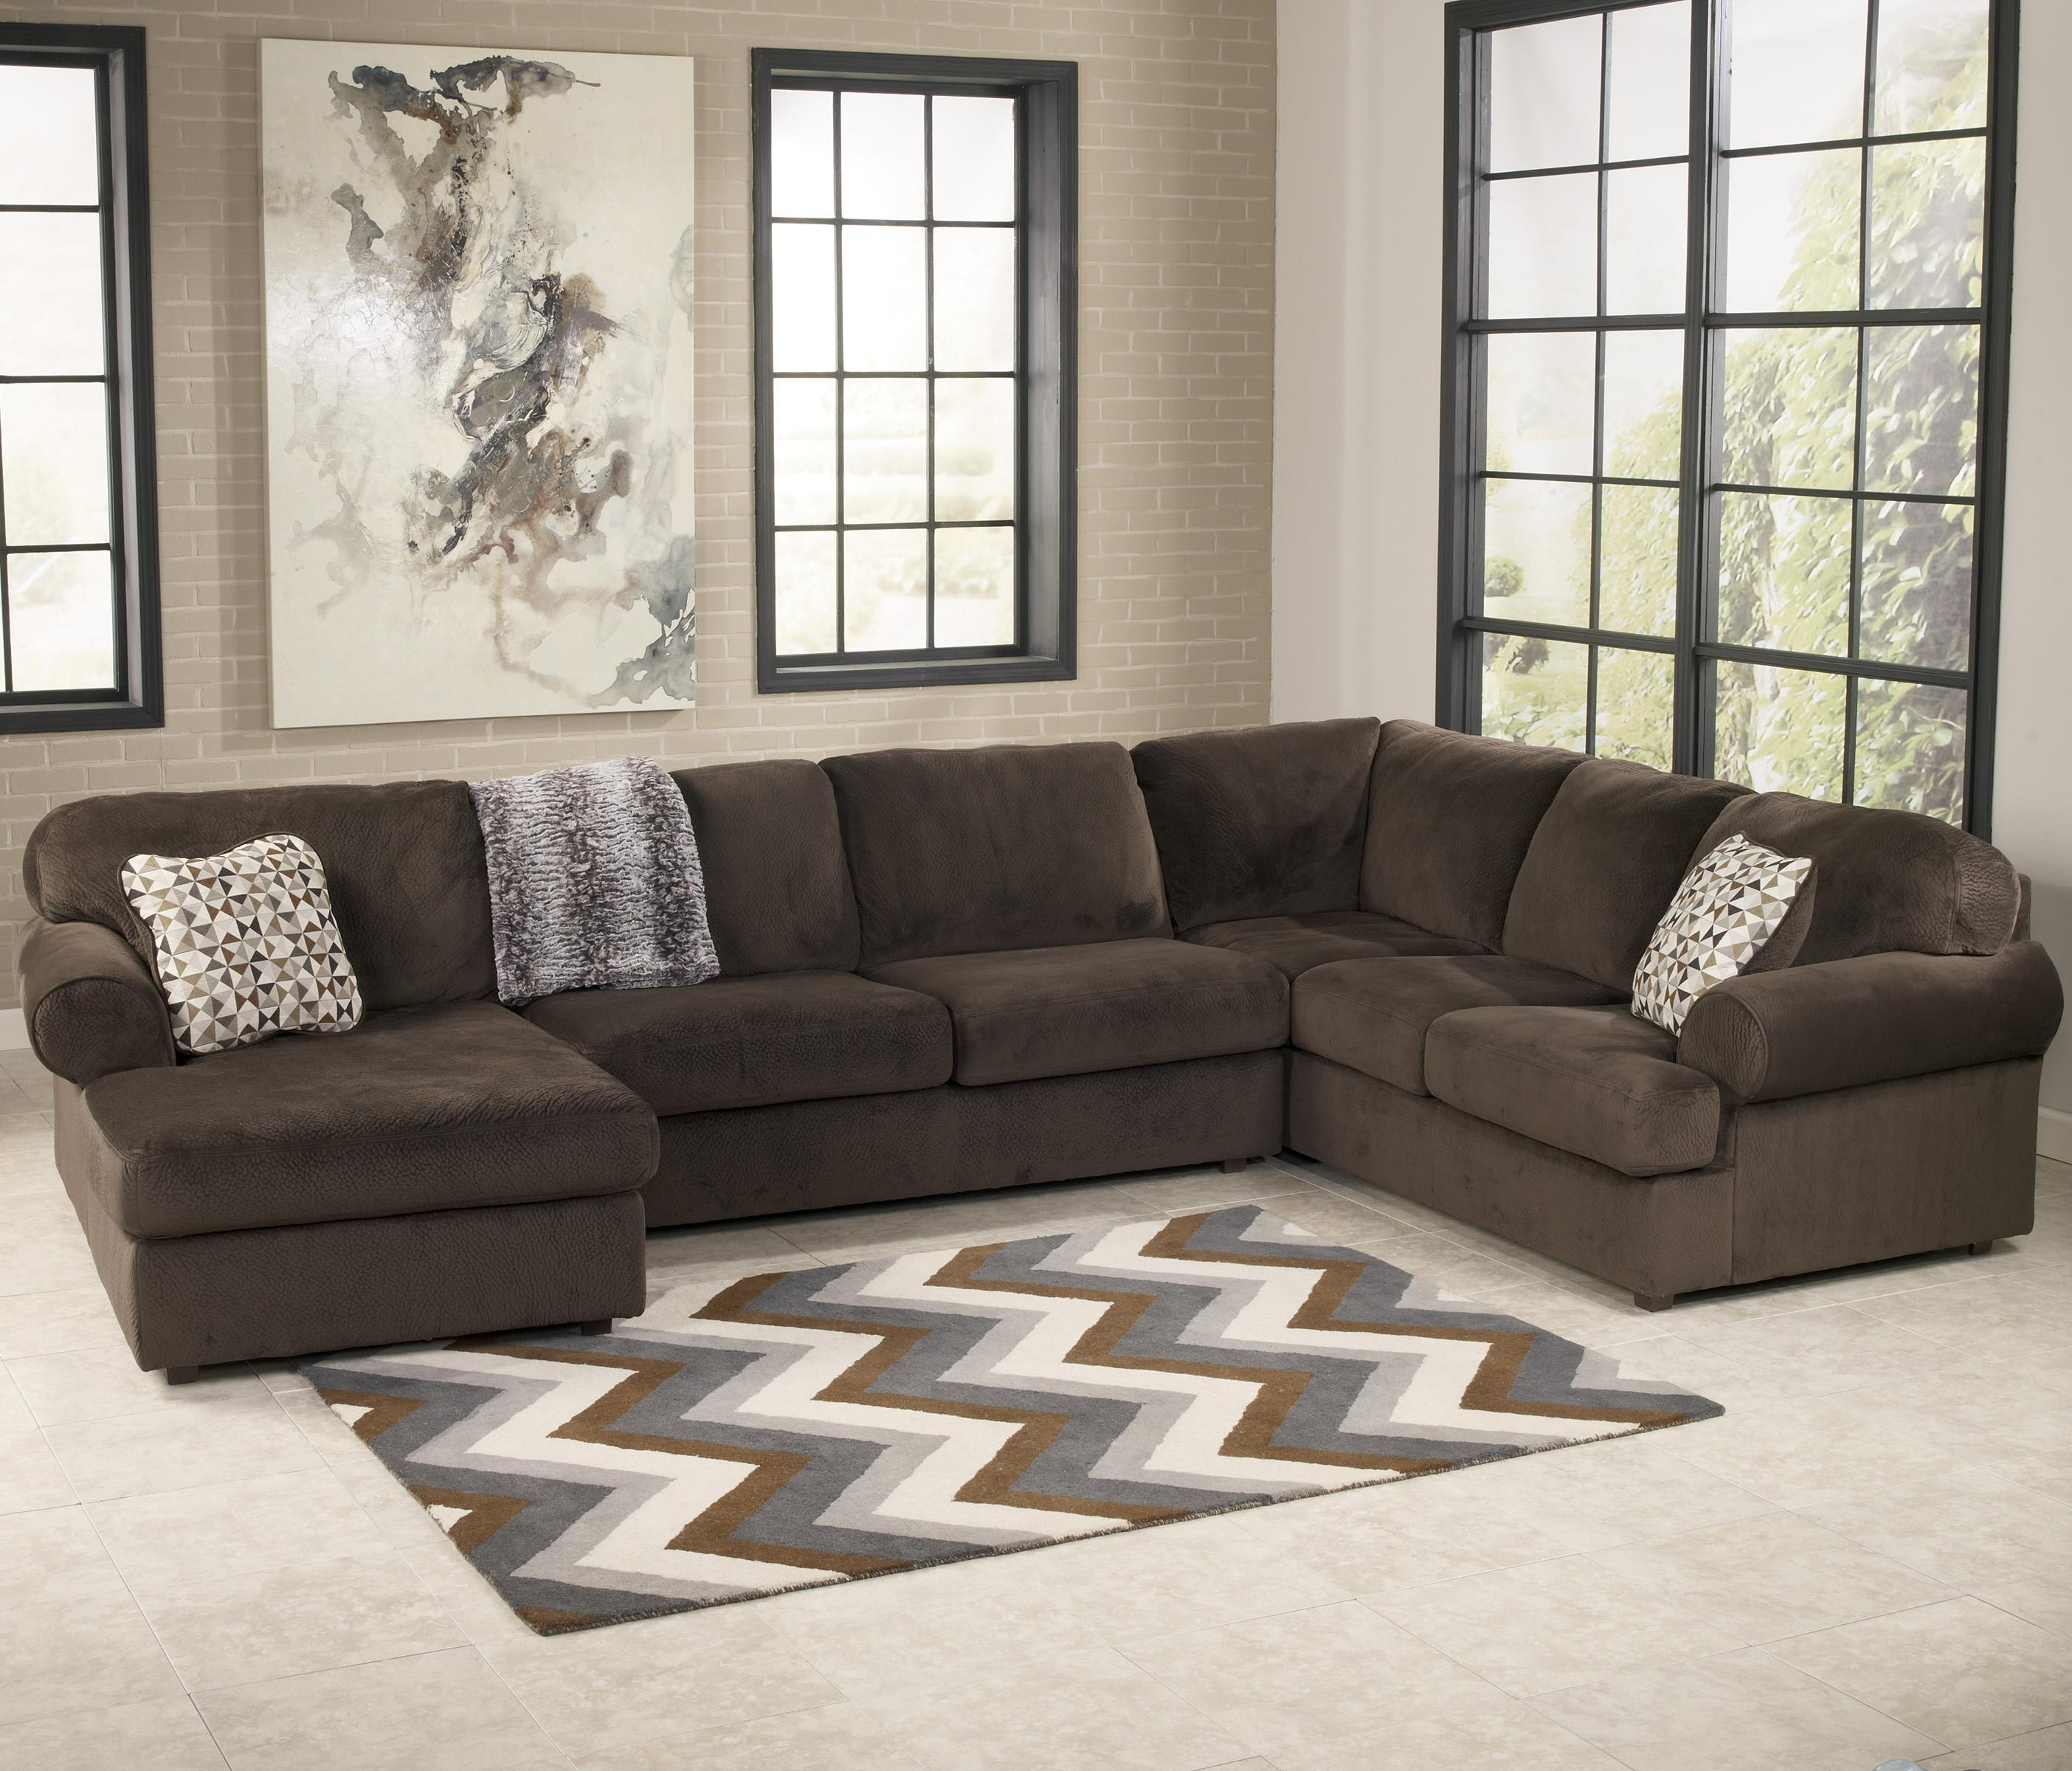 Signature Designashley Jessa Place – Chocolate Casual Sectional Intended For Norfolk Chocolate 3 Piece Sectionals With Raf Chaise (Image 27 of 33)